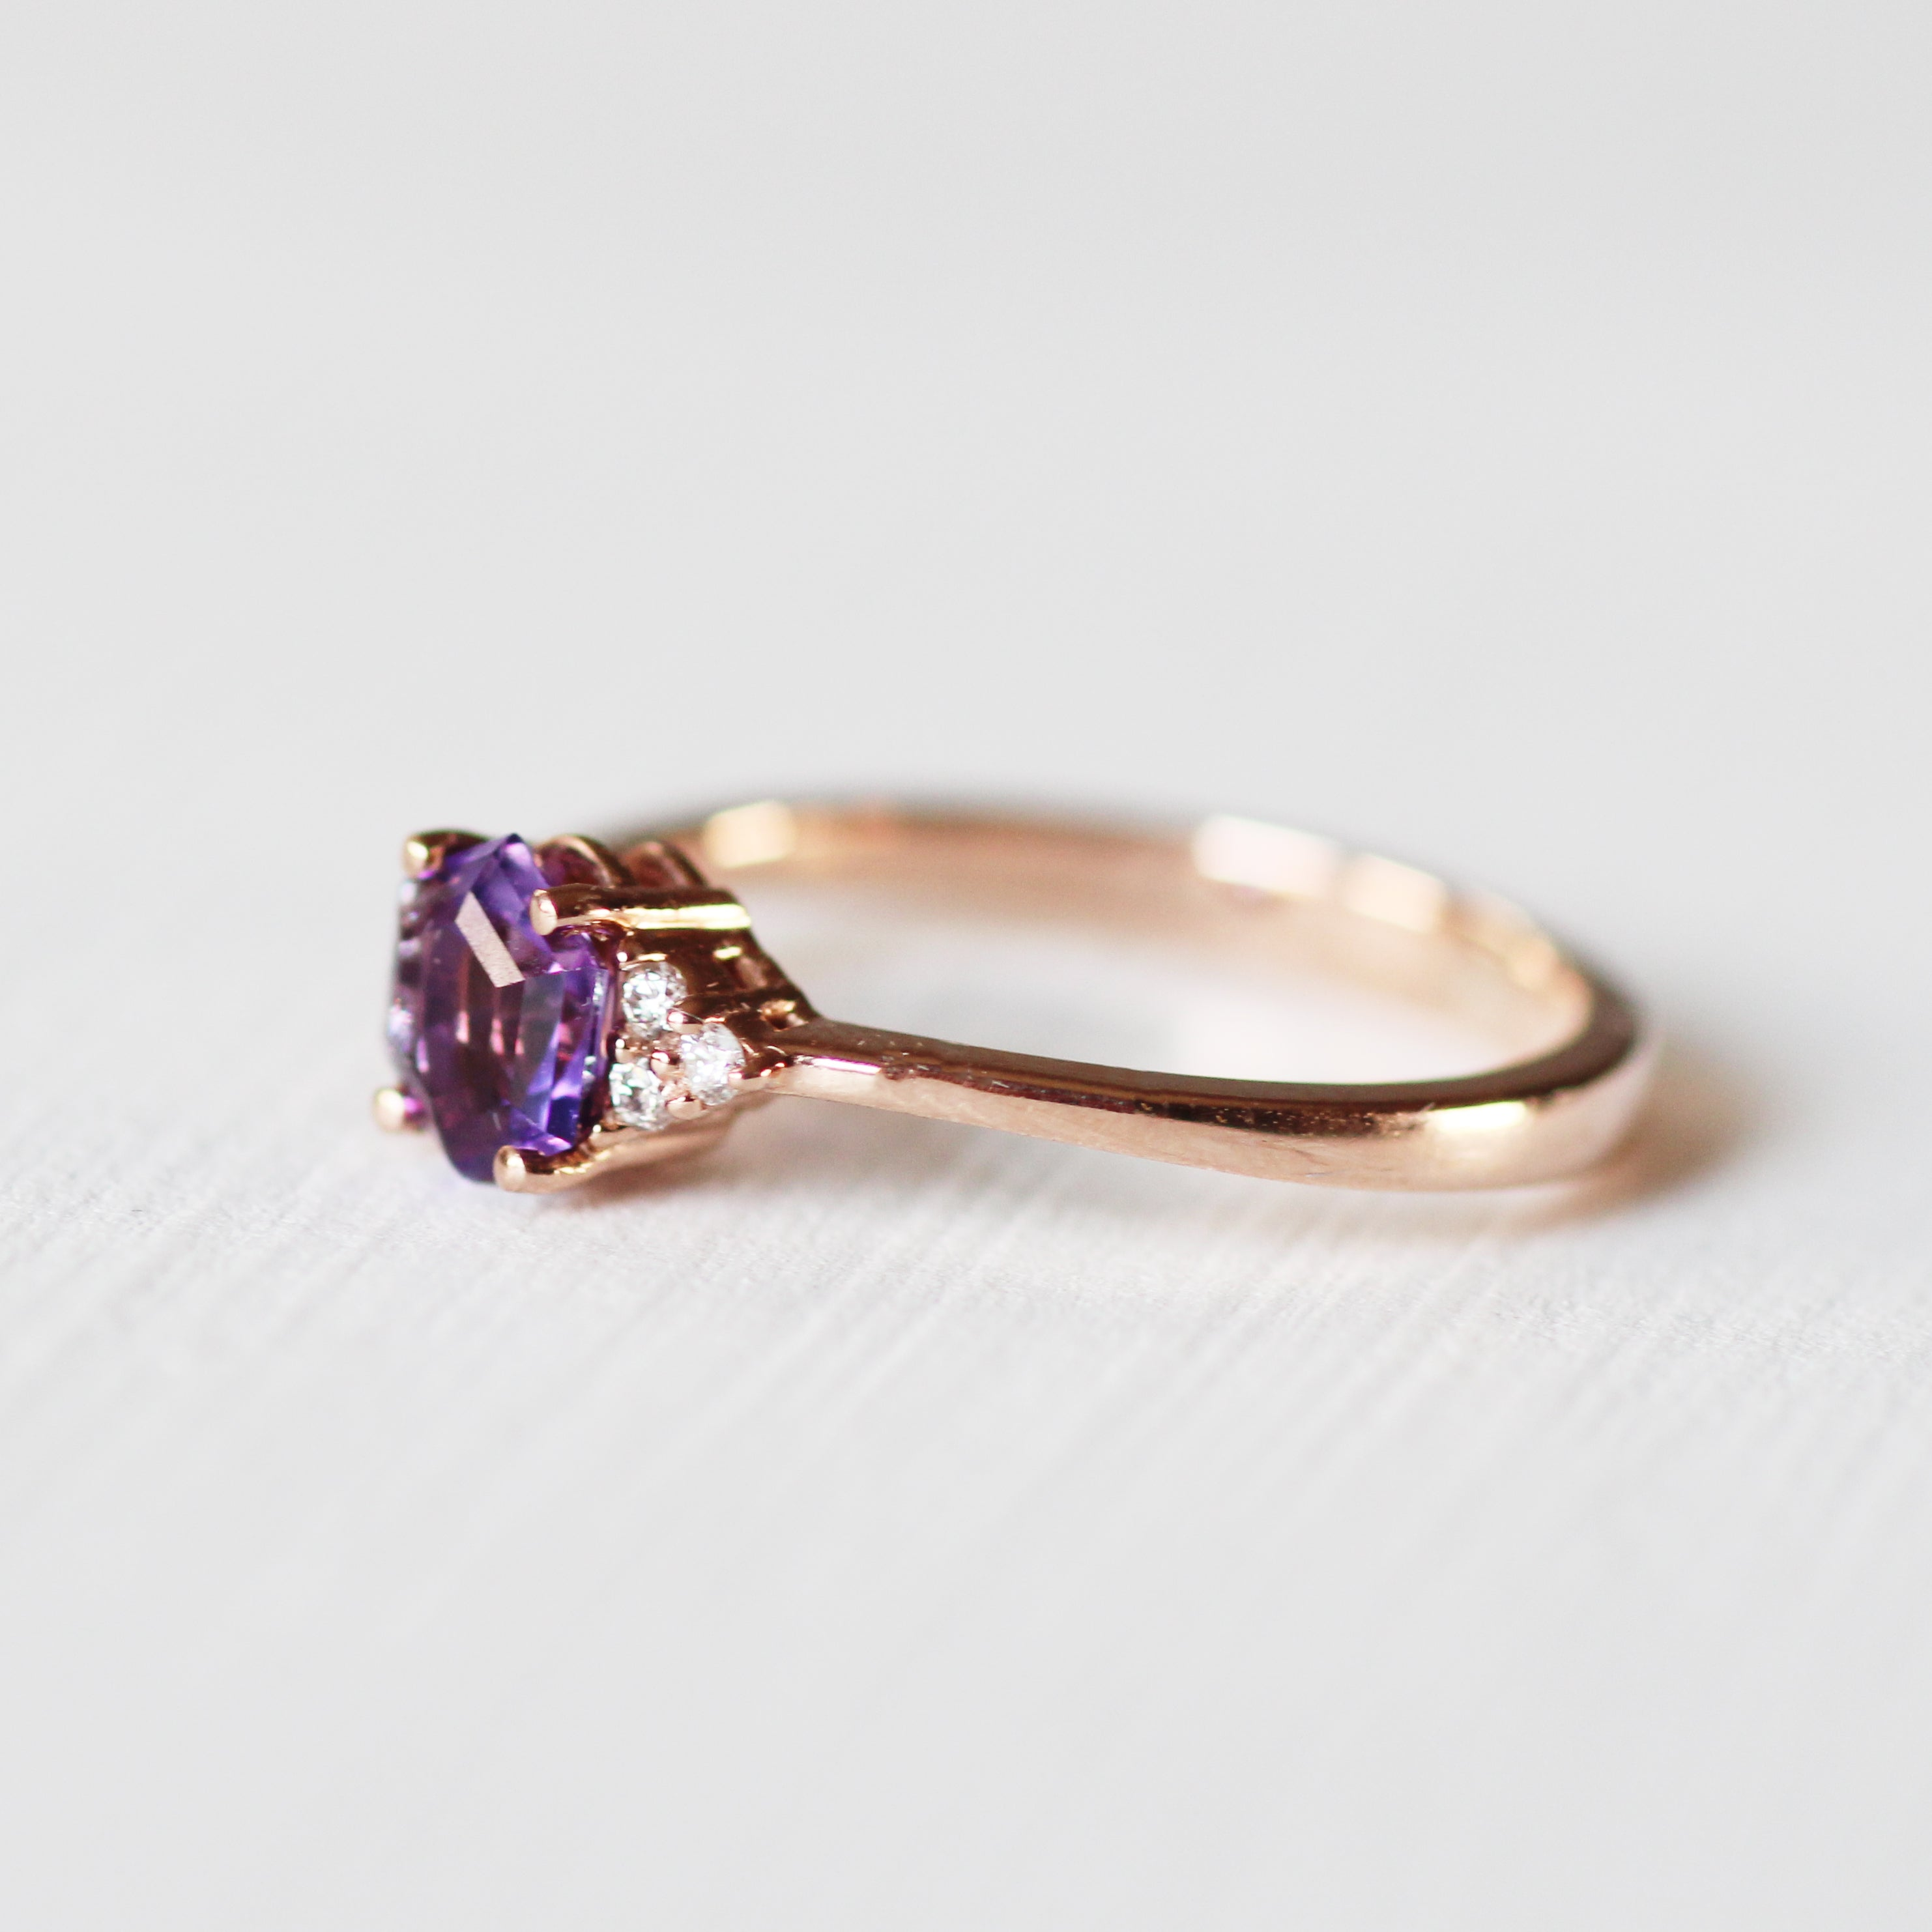 Imogene with natural Amethyst with natural diamonds in 14k rose gold - Midwinter Co. Alternative Bridal Rings and Modern Fine Jewelry